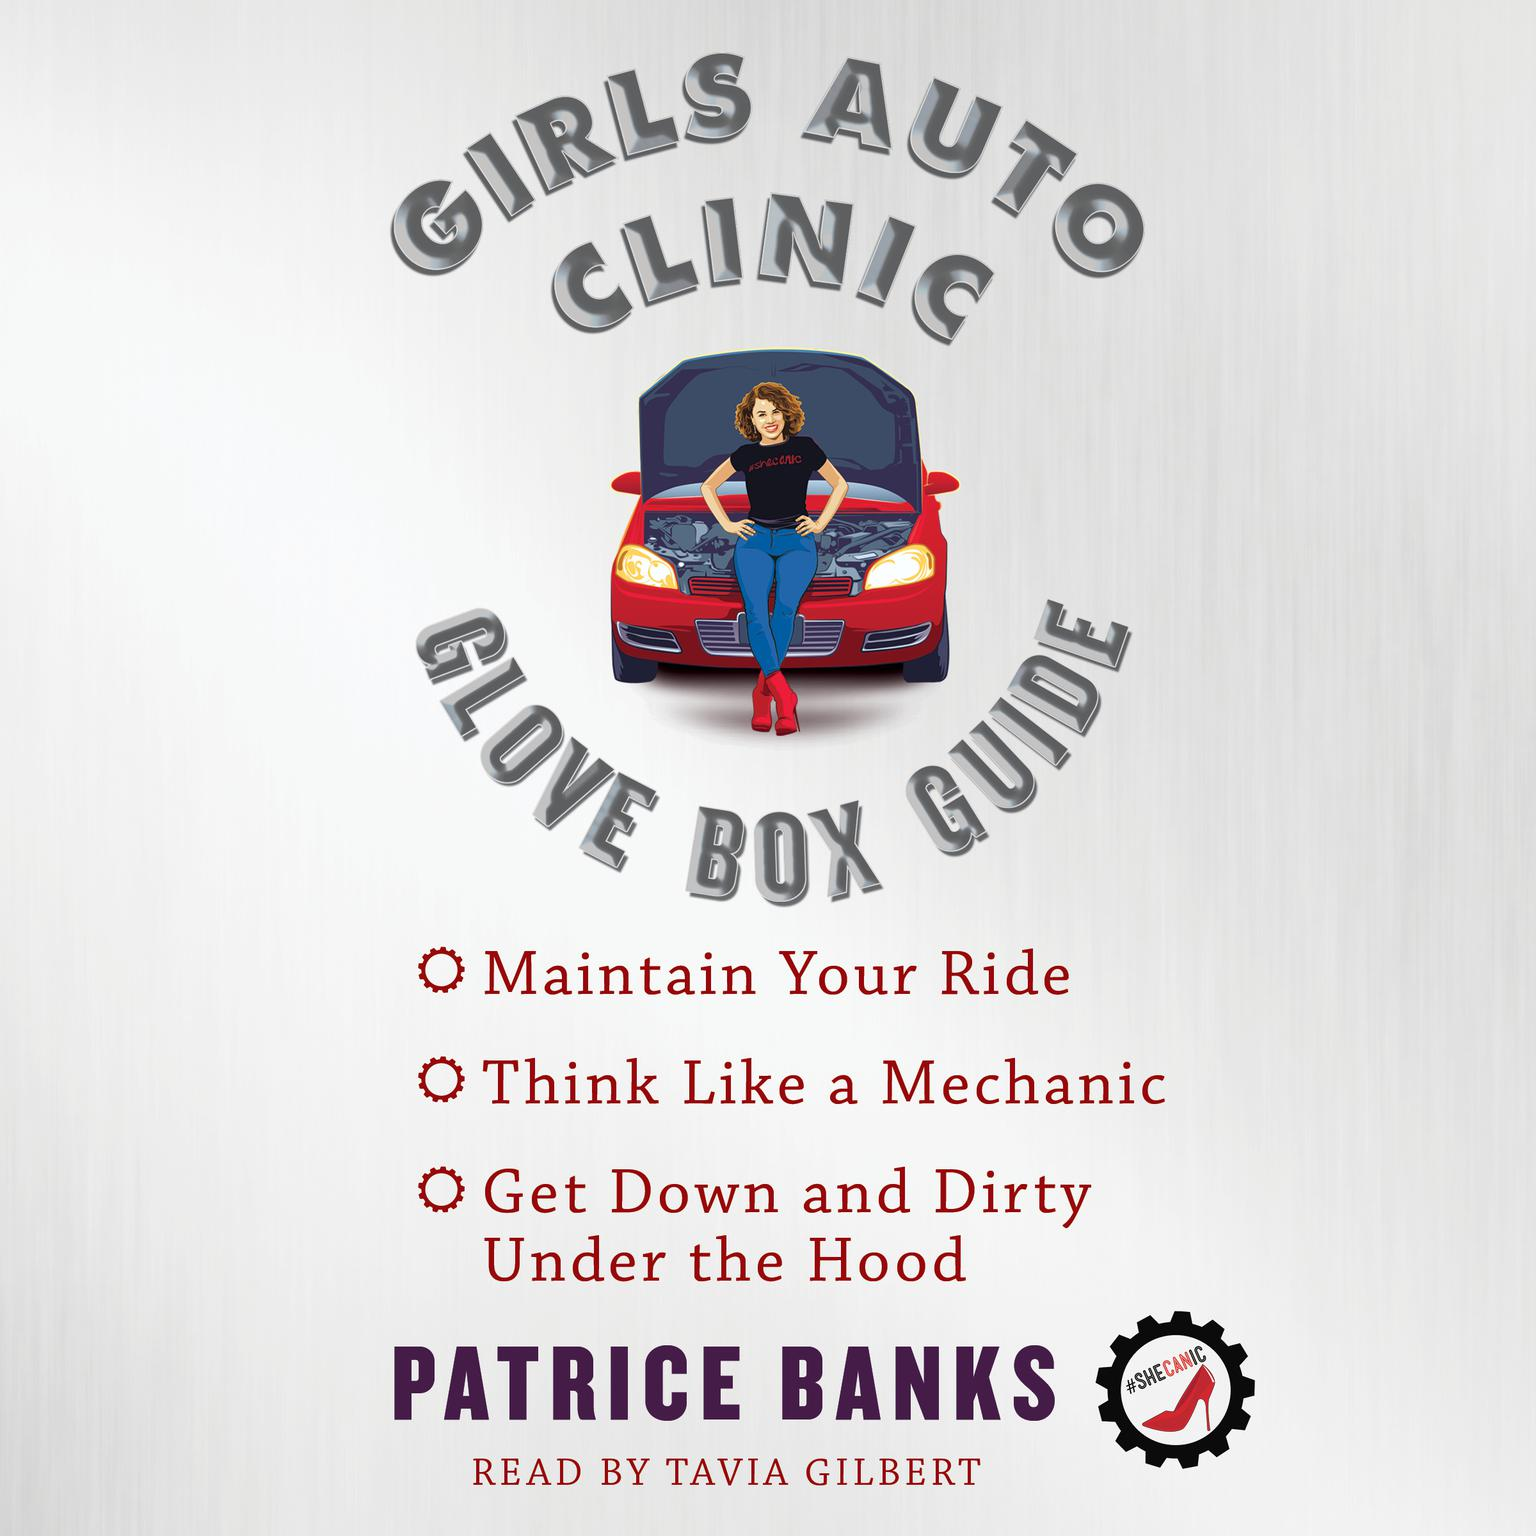 Girls Auto Clinic Glove Box Guide Audiobook, by Patrice Banks